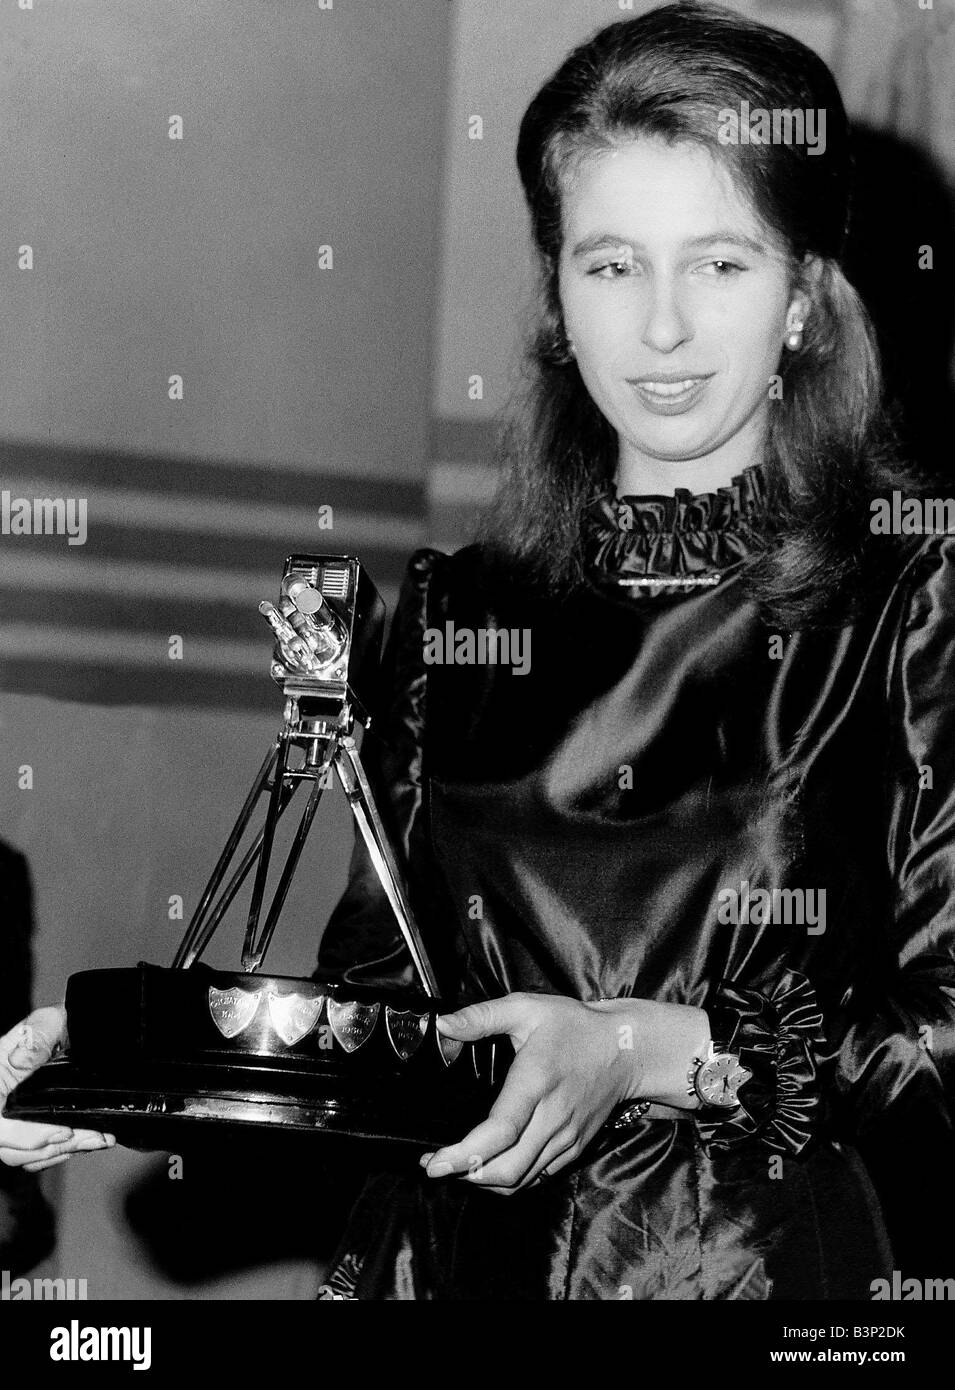 Princess Anne BBC Sports Personality of the Year winner at BBC TV Theatre Shepherds Bush - Stock Image